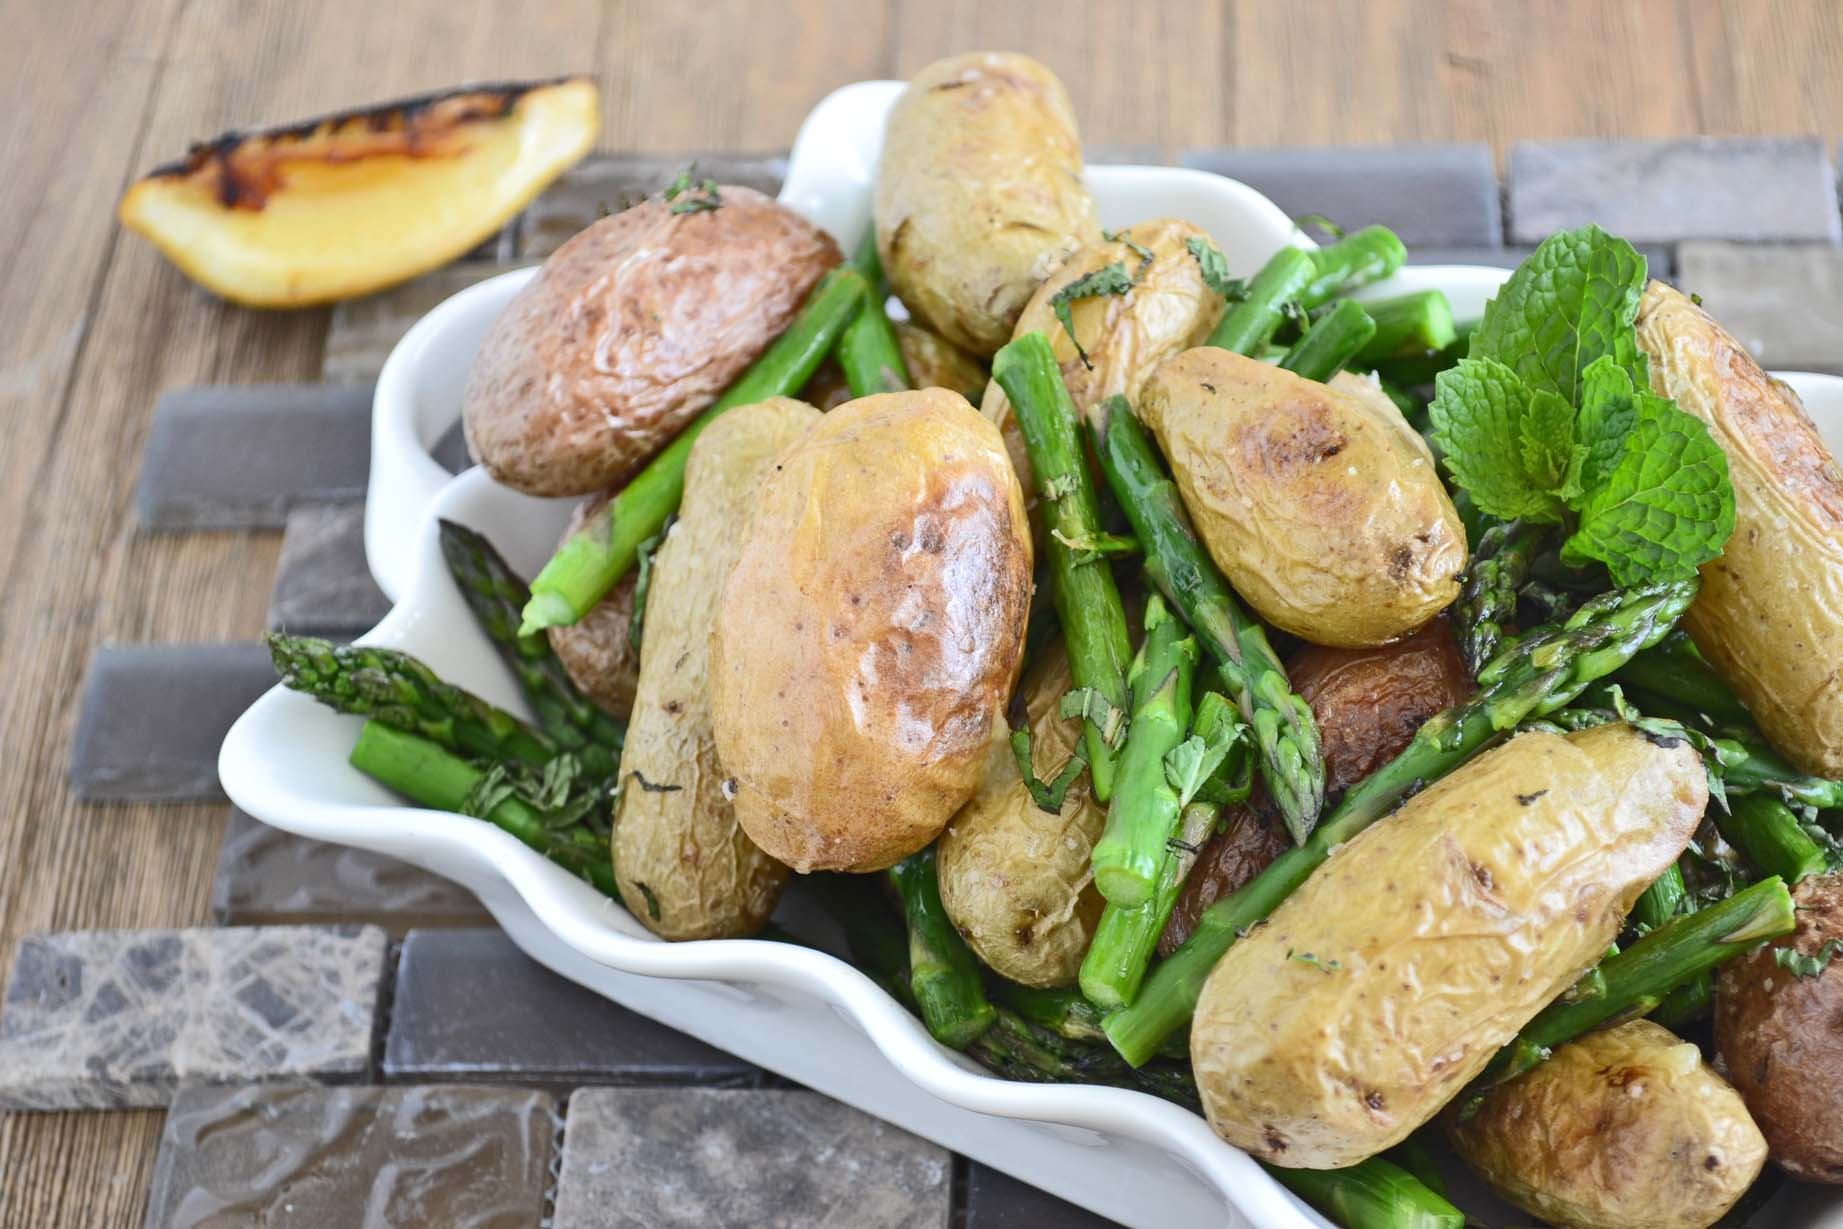 Roasted Potatoes with Asparagus, Mint and Charred Lemon